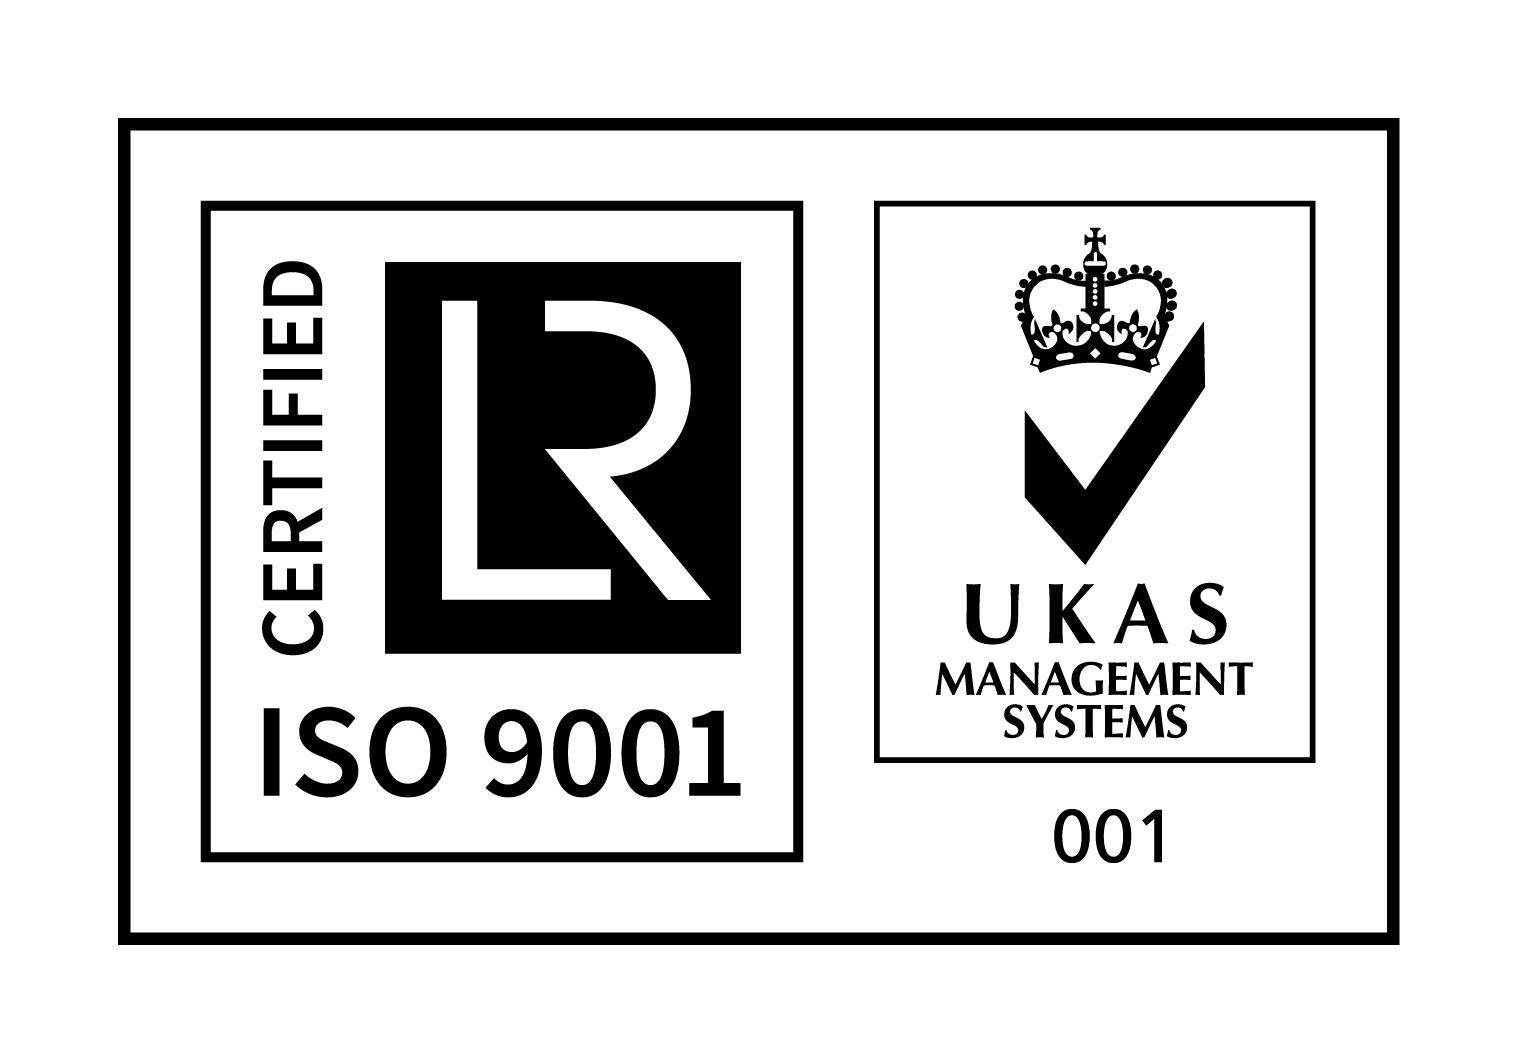 ISO:9001 2015 quality management systems